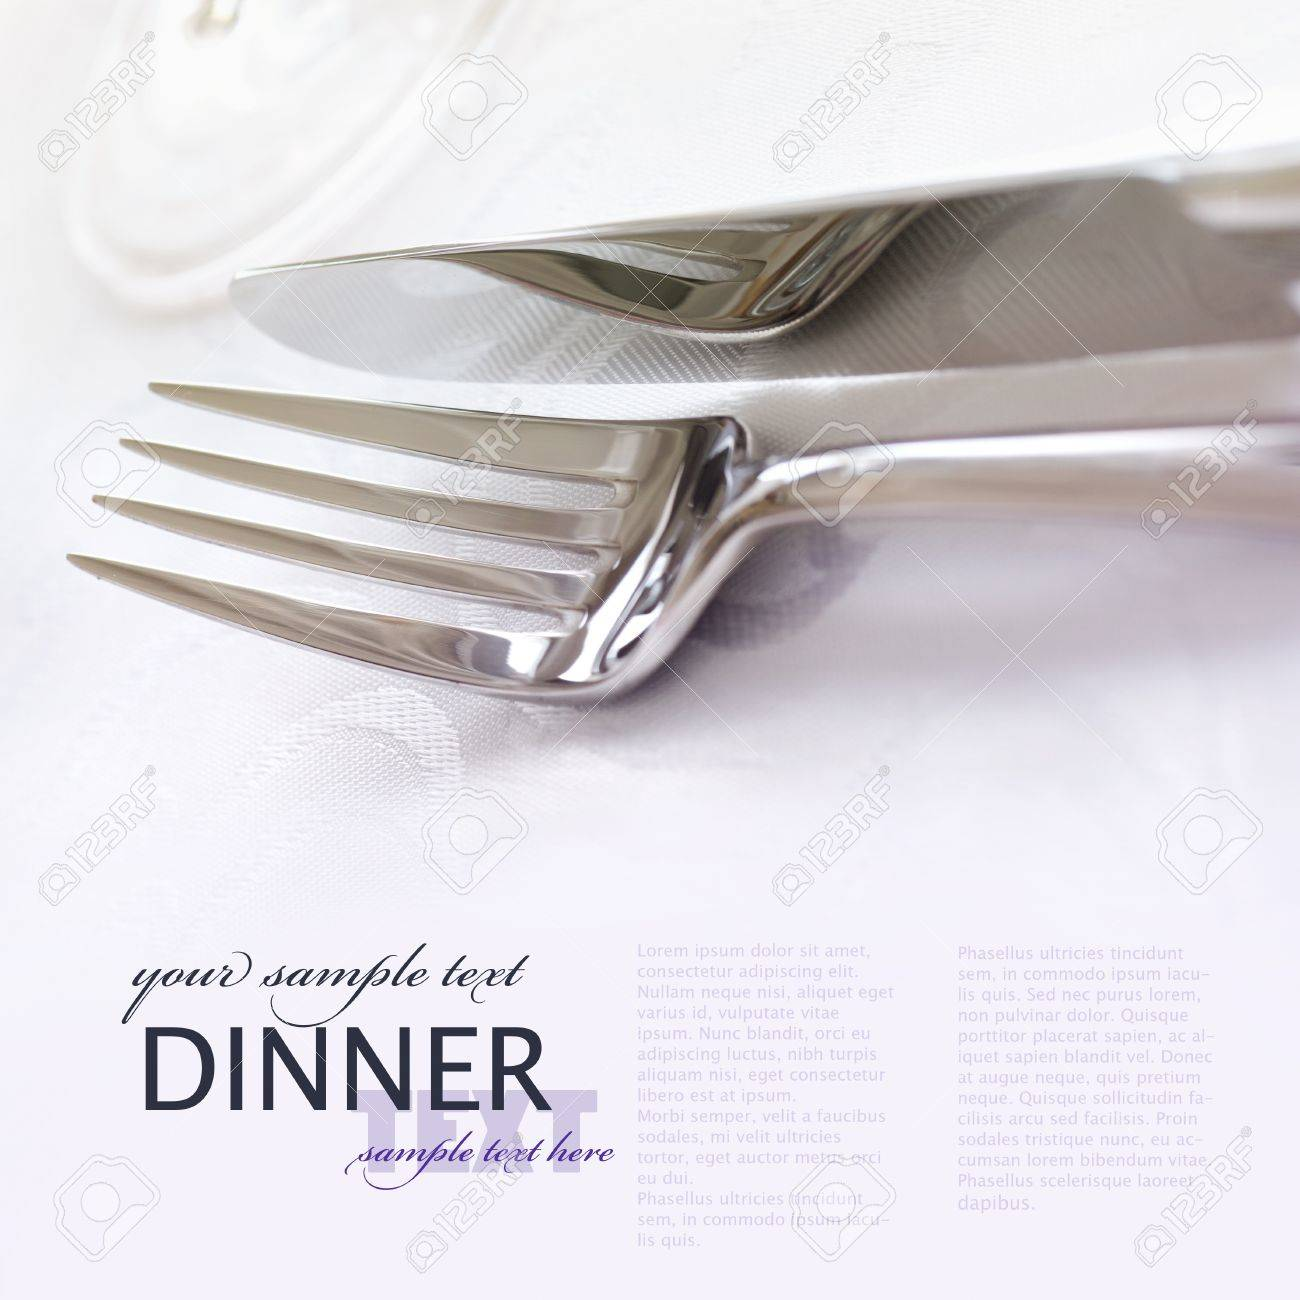 Elegant dinner table setting - Fork And Knife In Elegant Table Setting Stock Photo 10682638